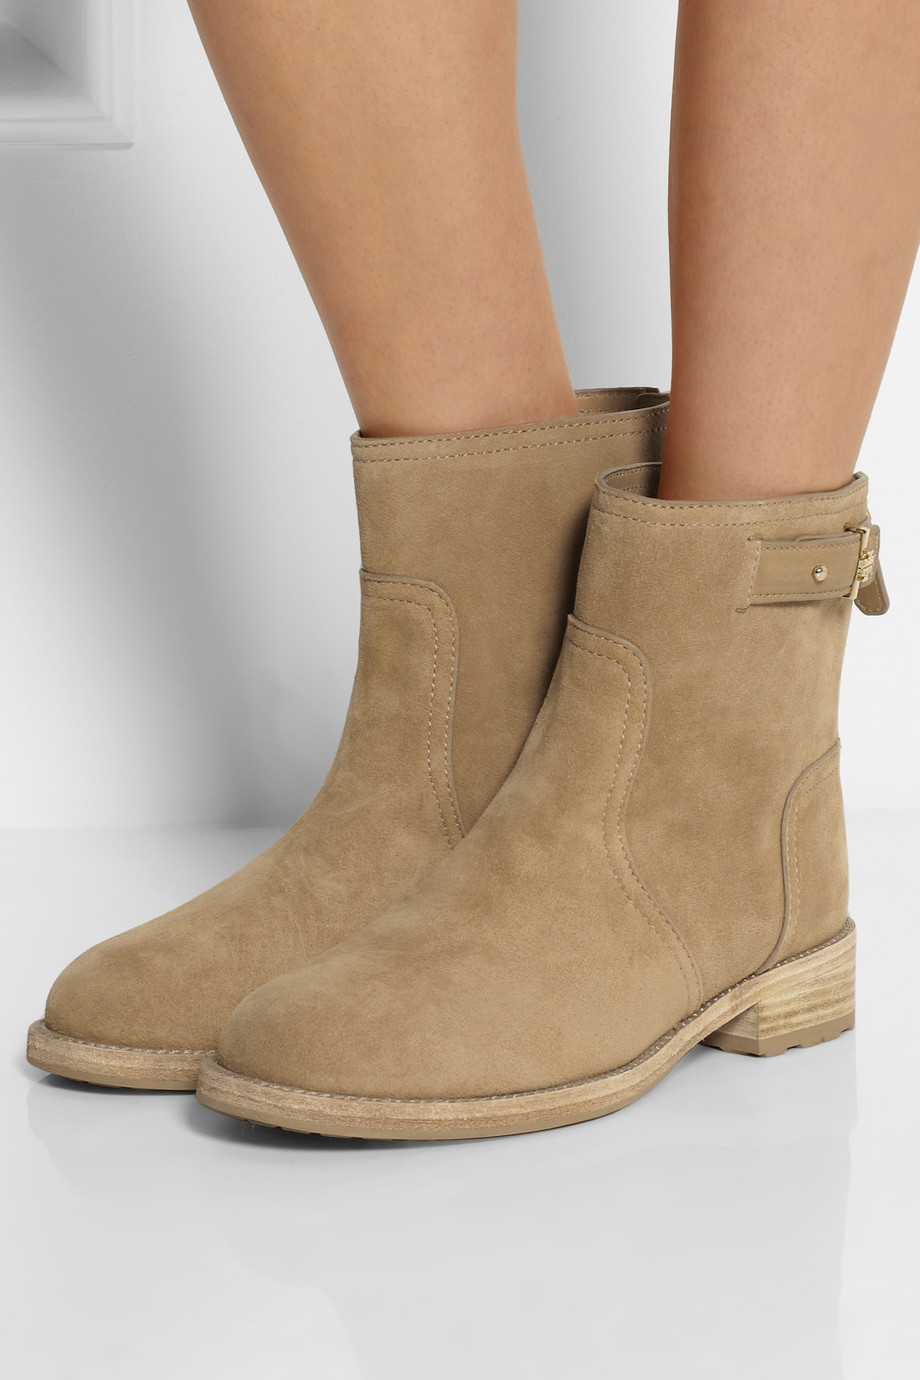 41ed95a65a2 Lyst - Tory Burch Selena Suede Ankle Boots in Brown